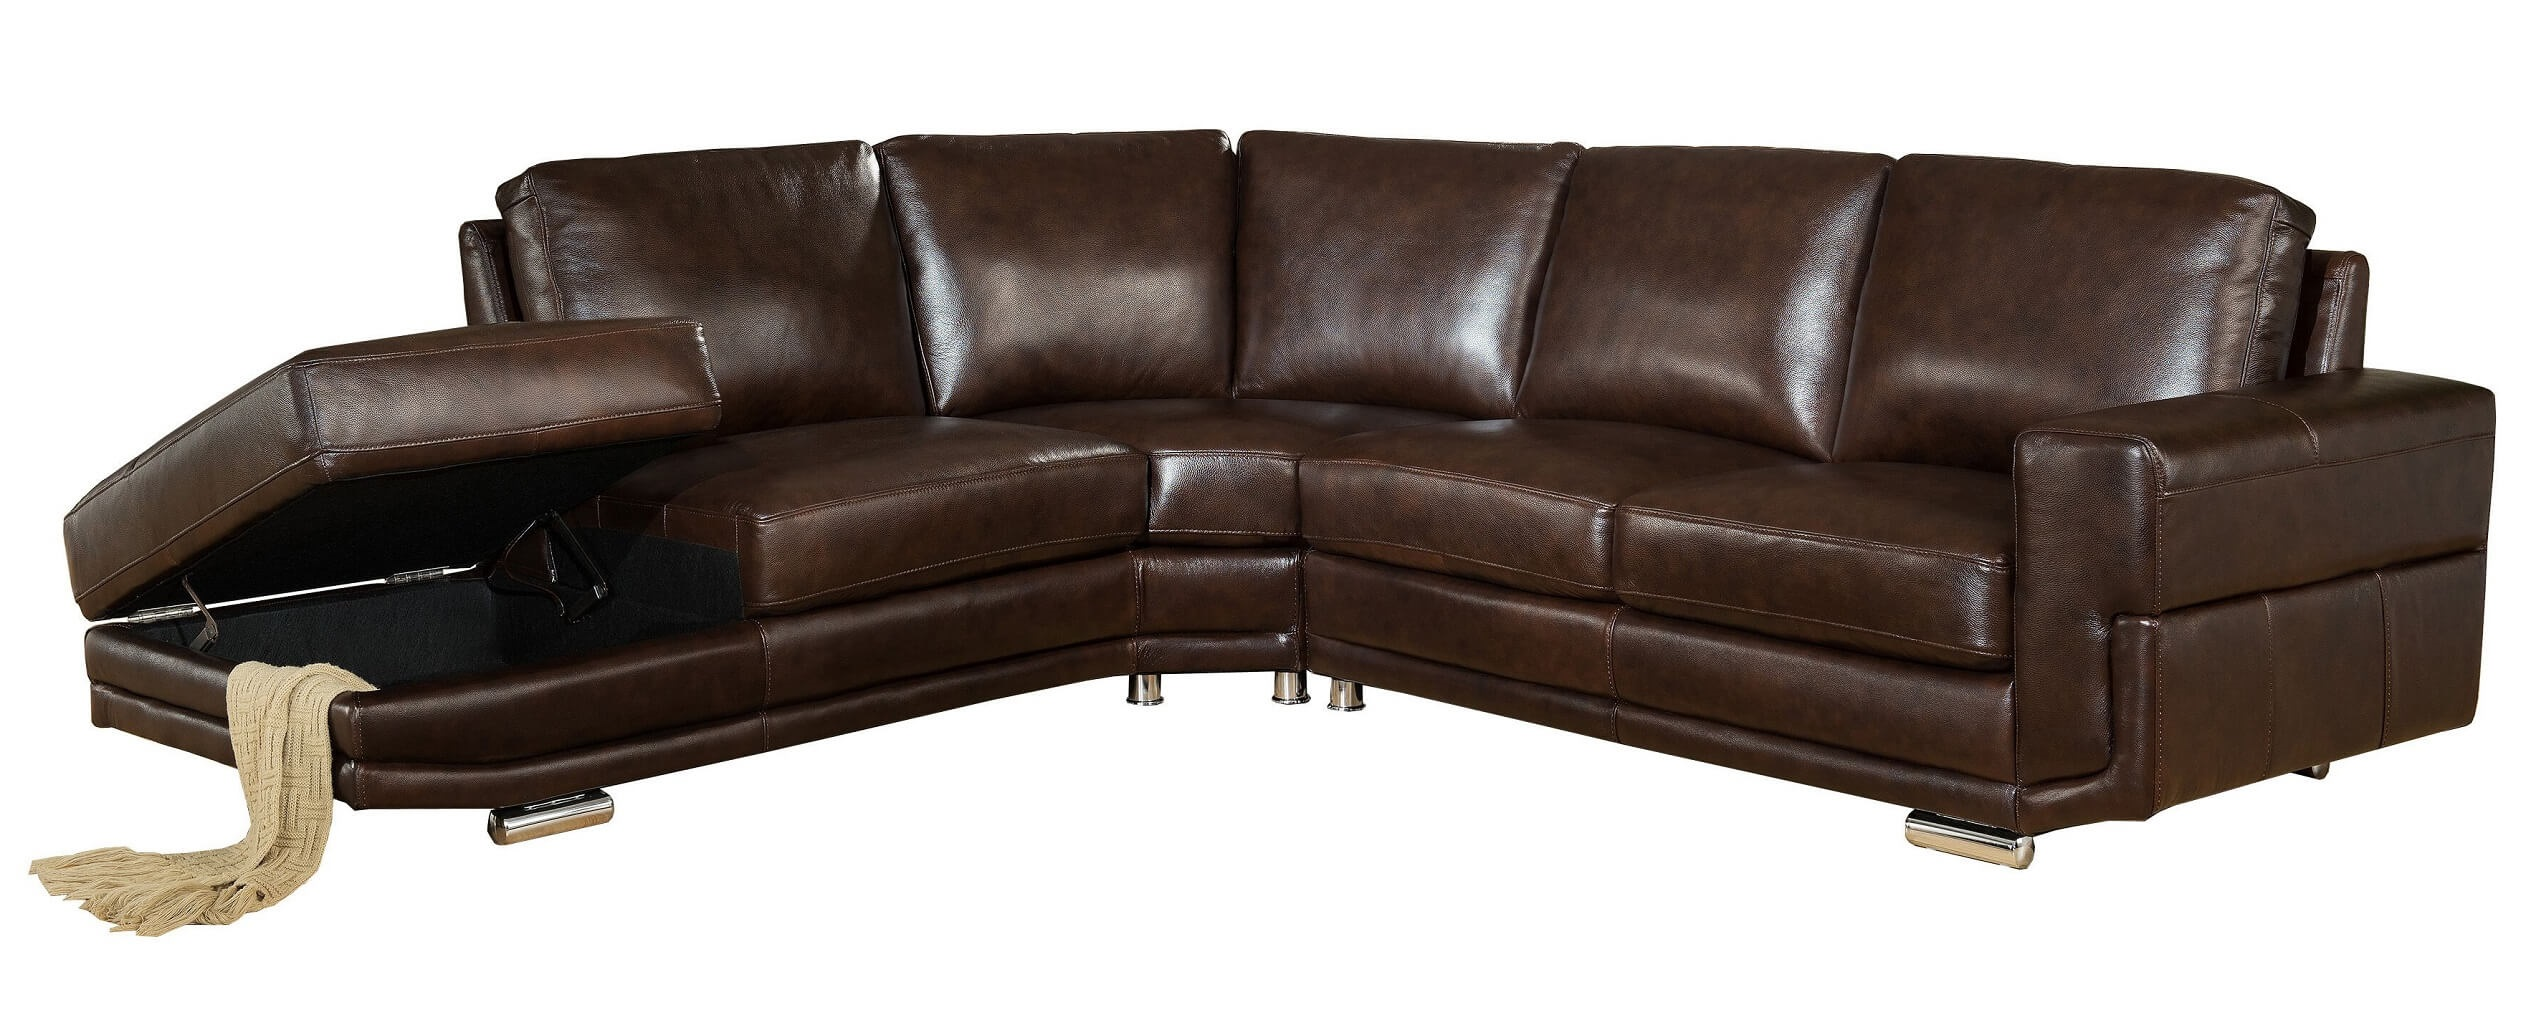 Incredible Jane Furniture Cecile Top Grain Dark Brown Leather Sectional Set Spiritservingveterans Wood Chair Design Ideas Spiritservingveteransorg